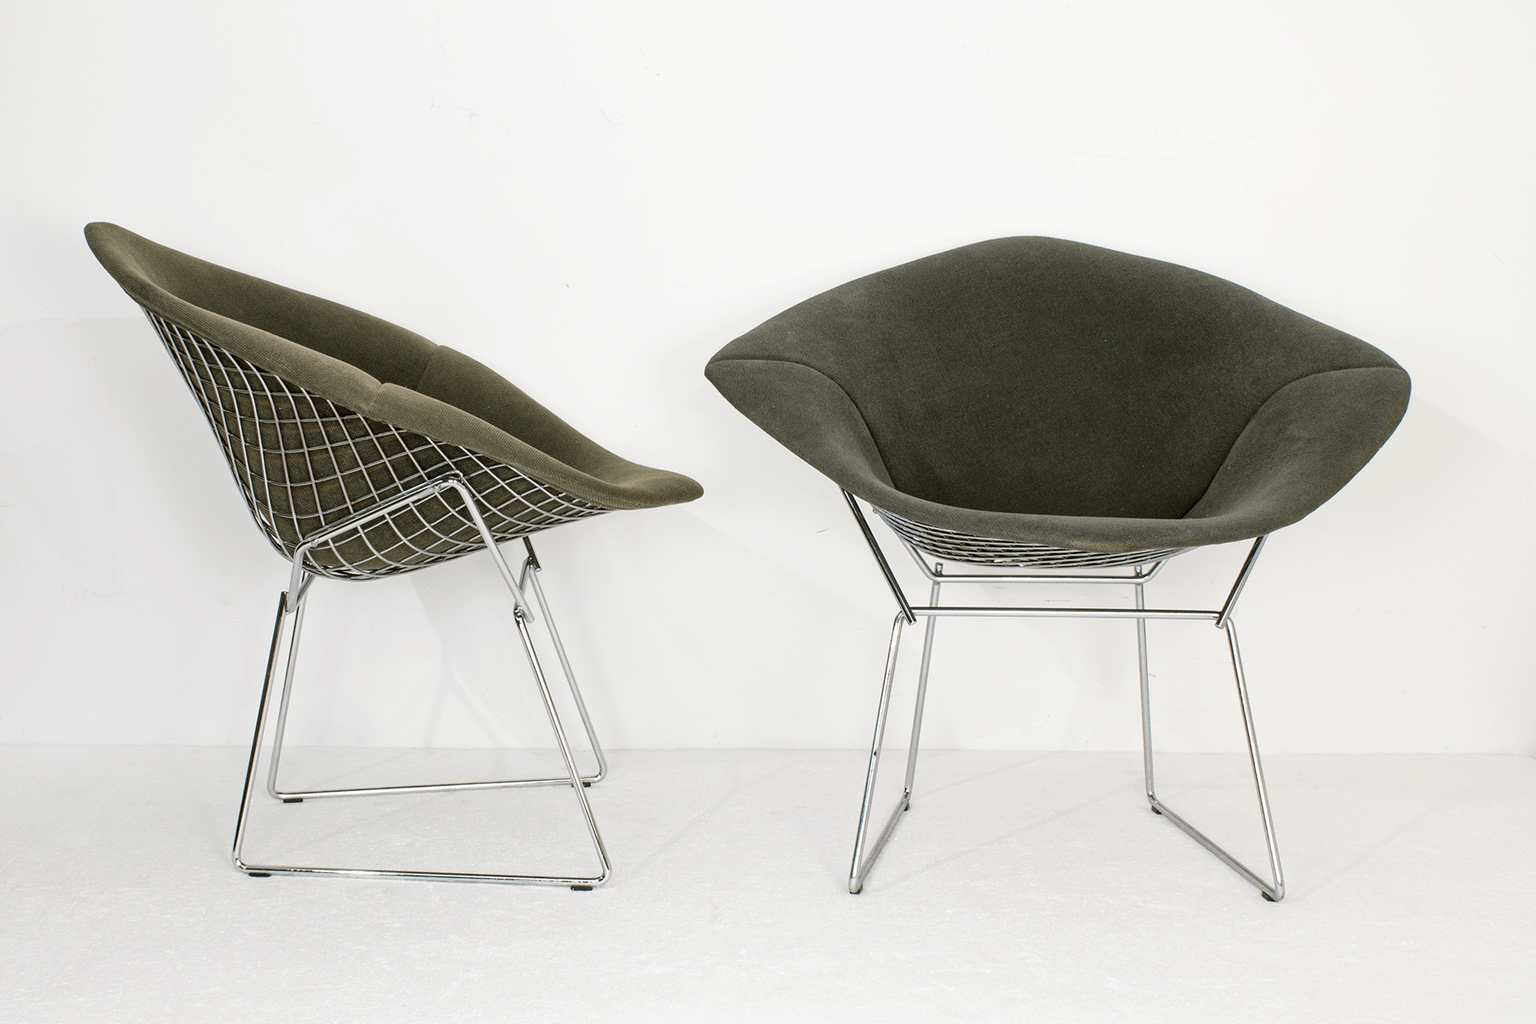 bertoia diamond chairs for knoll. Black Bedroom Furniture Sets. Home Design Ideas